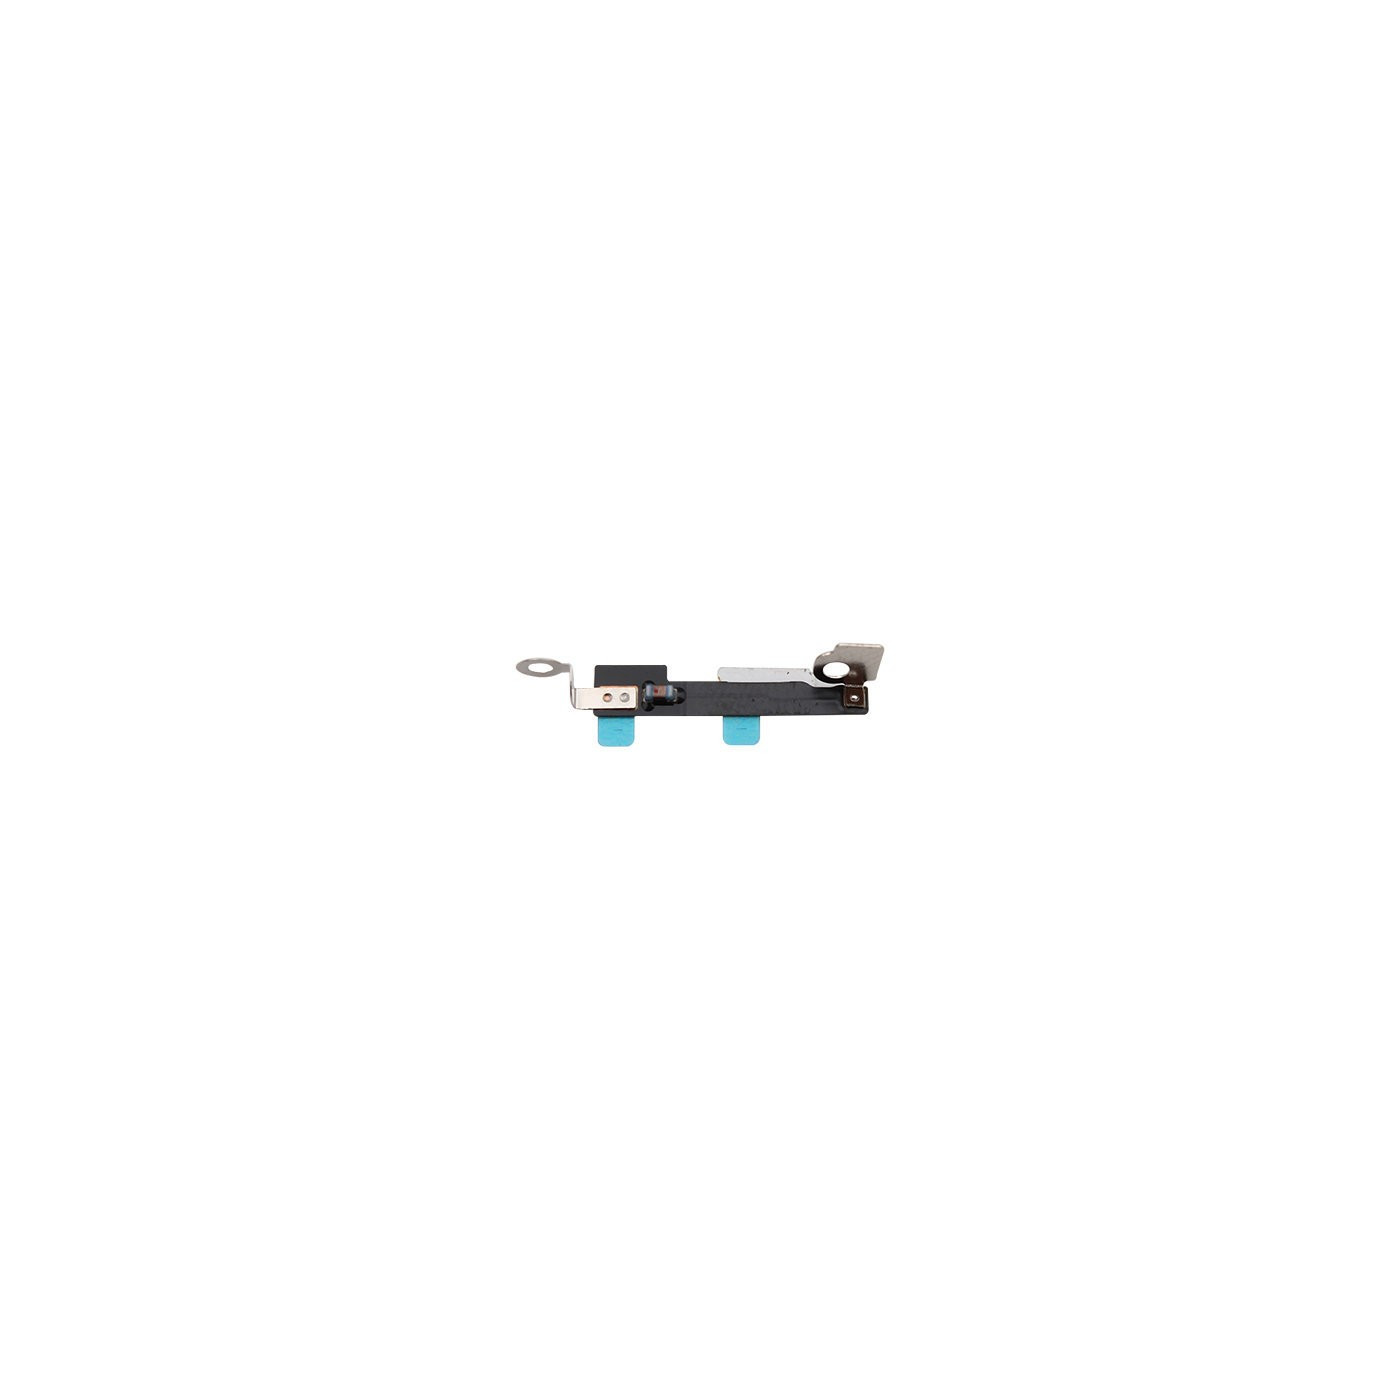 Flat flex cable signal receiving antenna for Iphone 5S